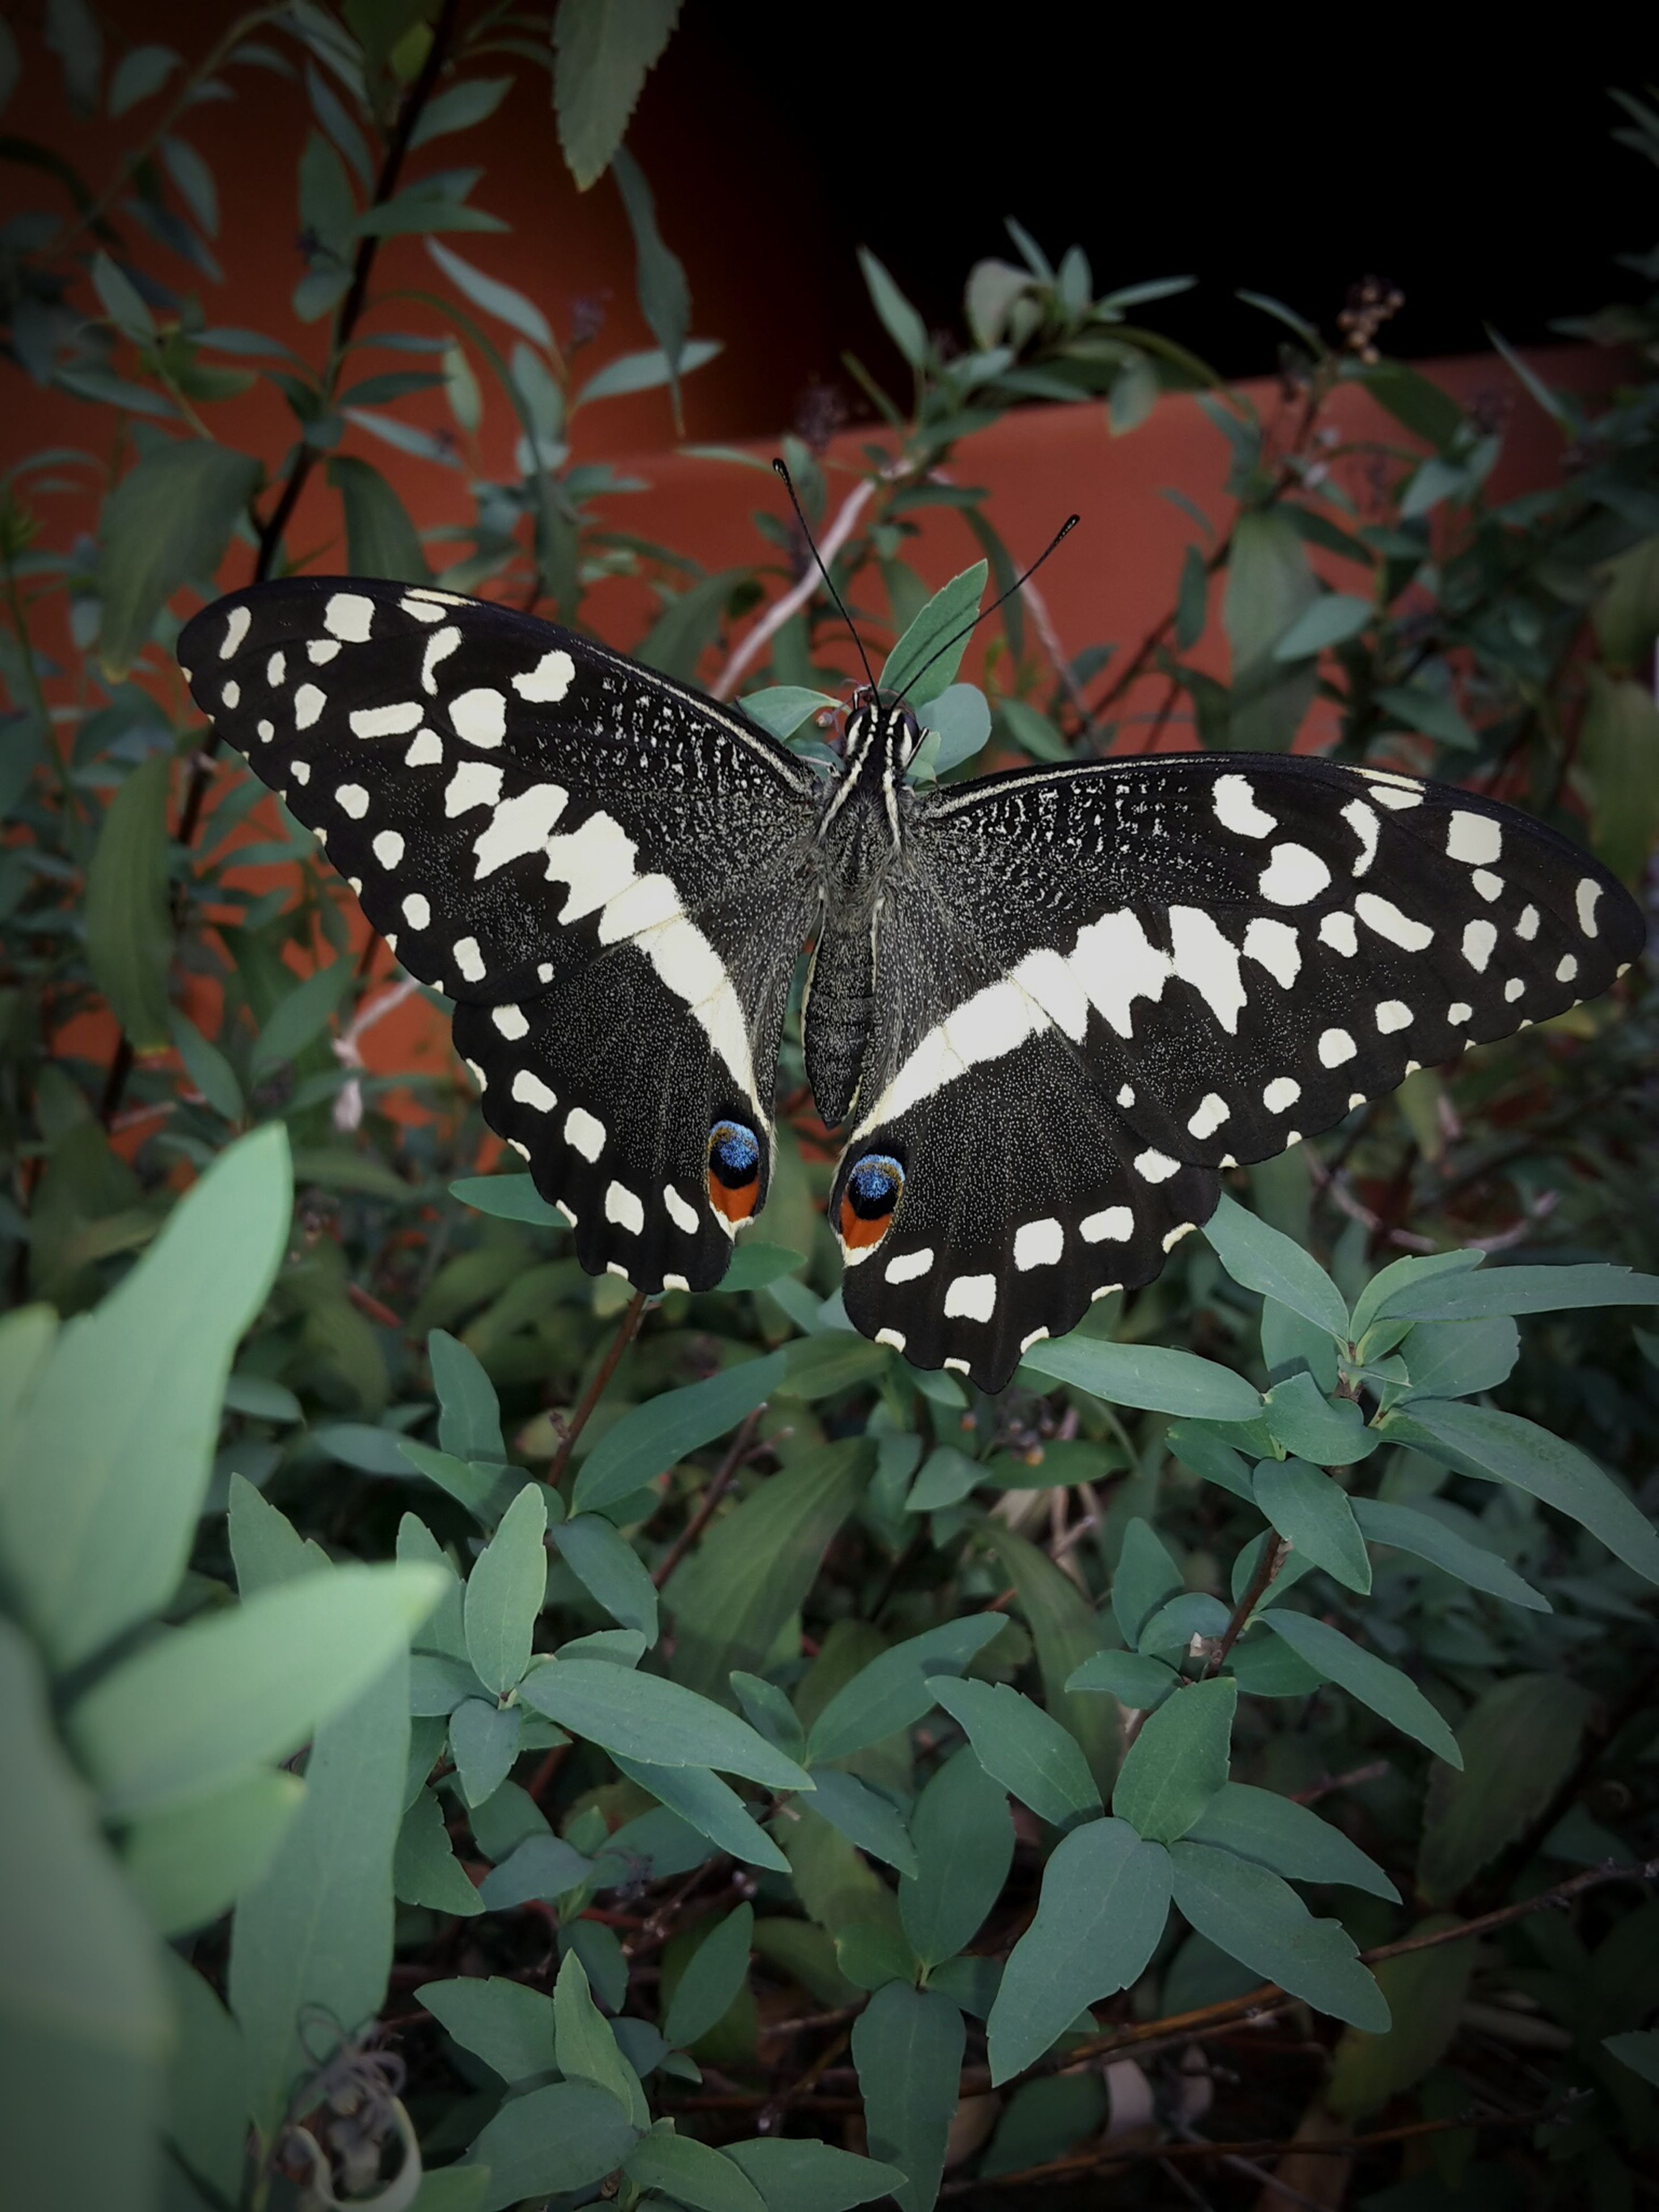 butterfly - insect, one animal, animal themes, insect, animals in the wild, butterfly, animal markings, leaf, wildlife, plant, close-up, nature, natural pattern, spotted, beauty in nature, growth, high angle view, focus on foreground, outdoors, animal wing